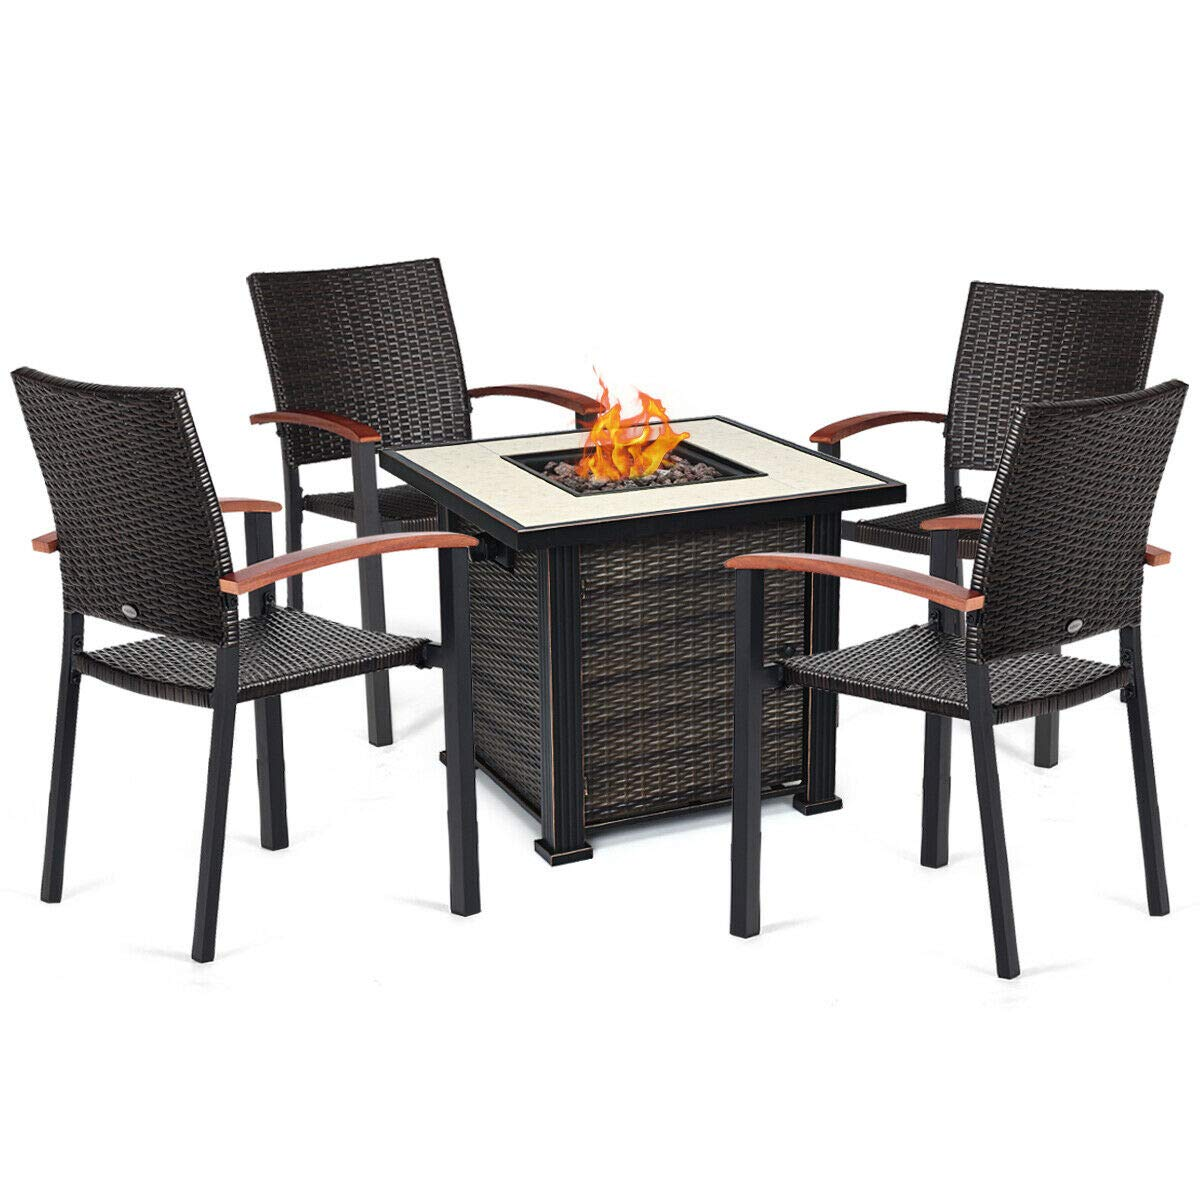 Tangkula 50,000 BTUs Square Propane Gas Fire Pit Table Set, 5 PCS Heater Outdoor Table with 4 Rattan Chairs by Tangkula